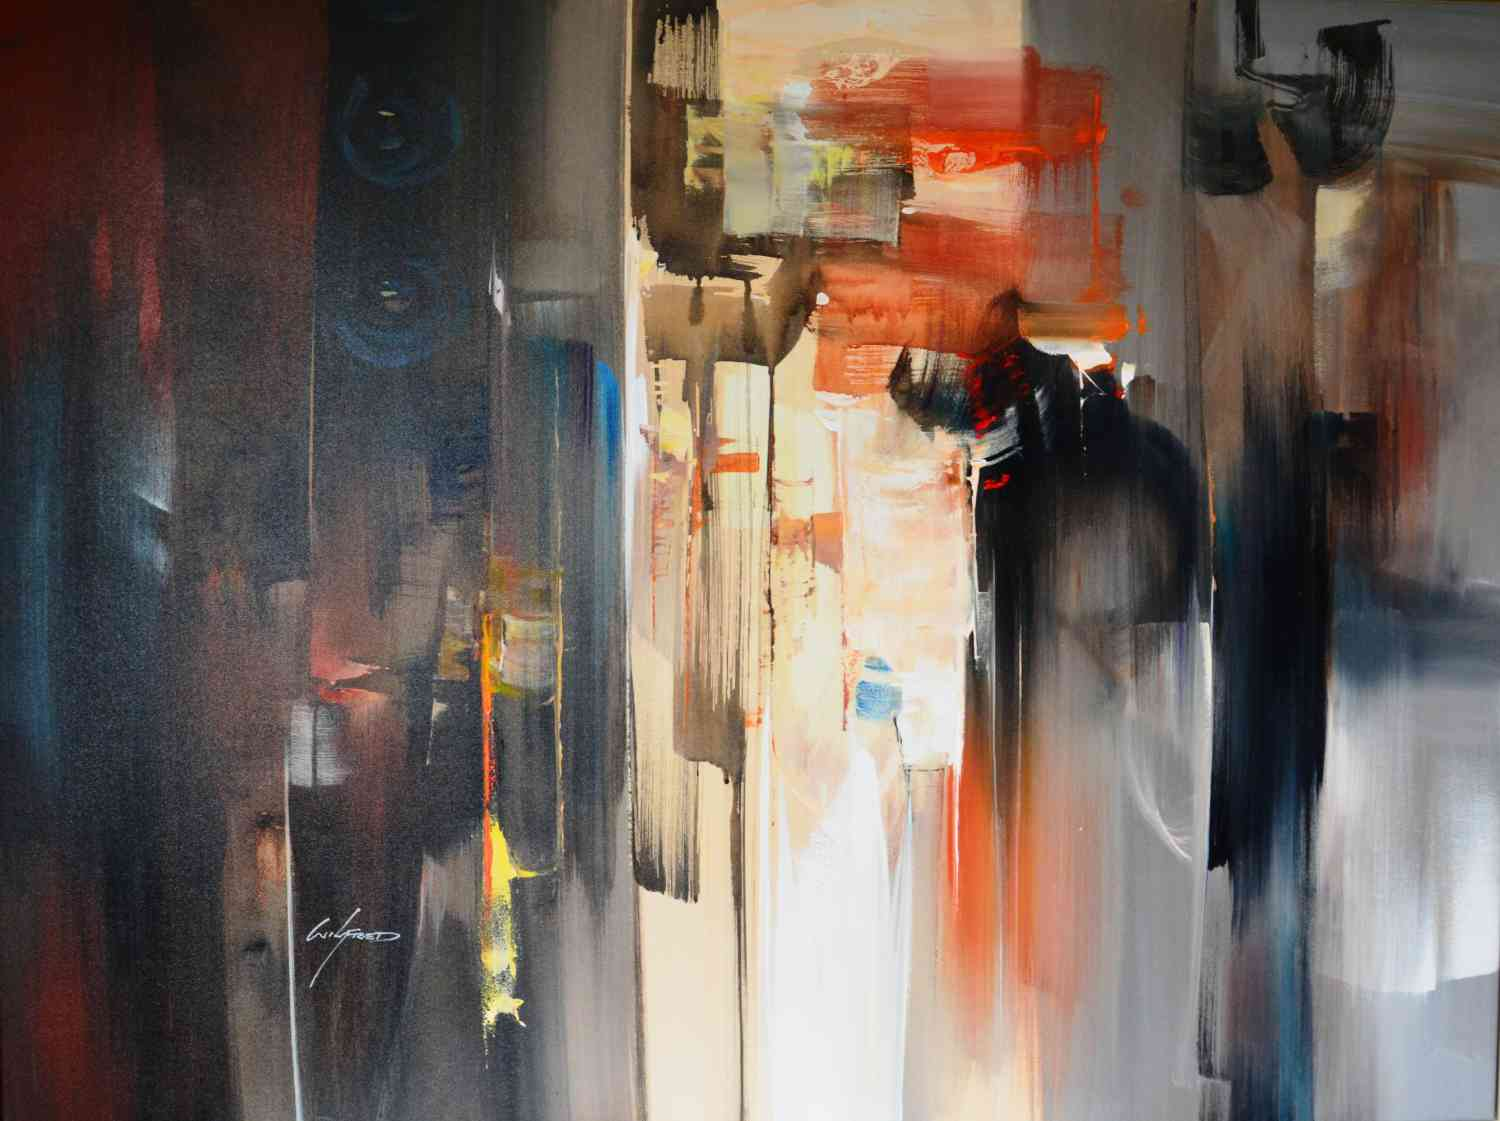 Abstraction von Wilkinson120 x 90cm